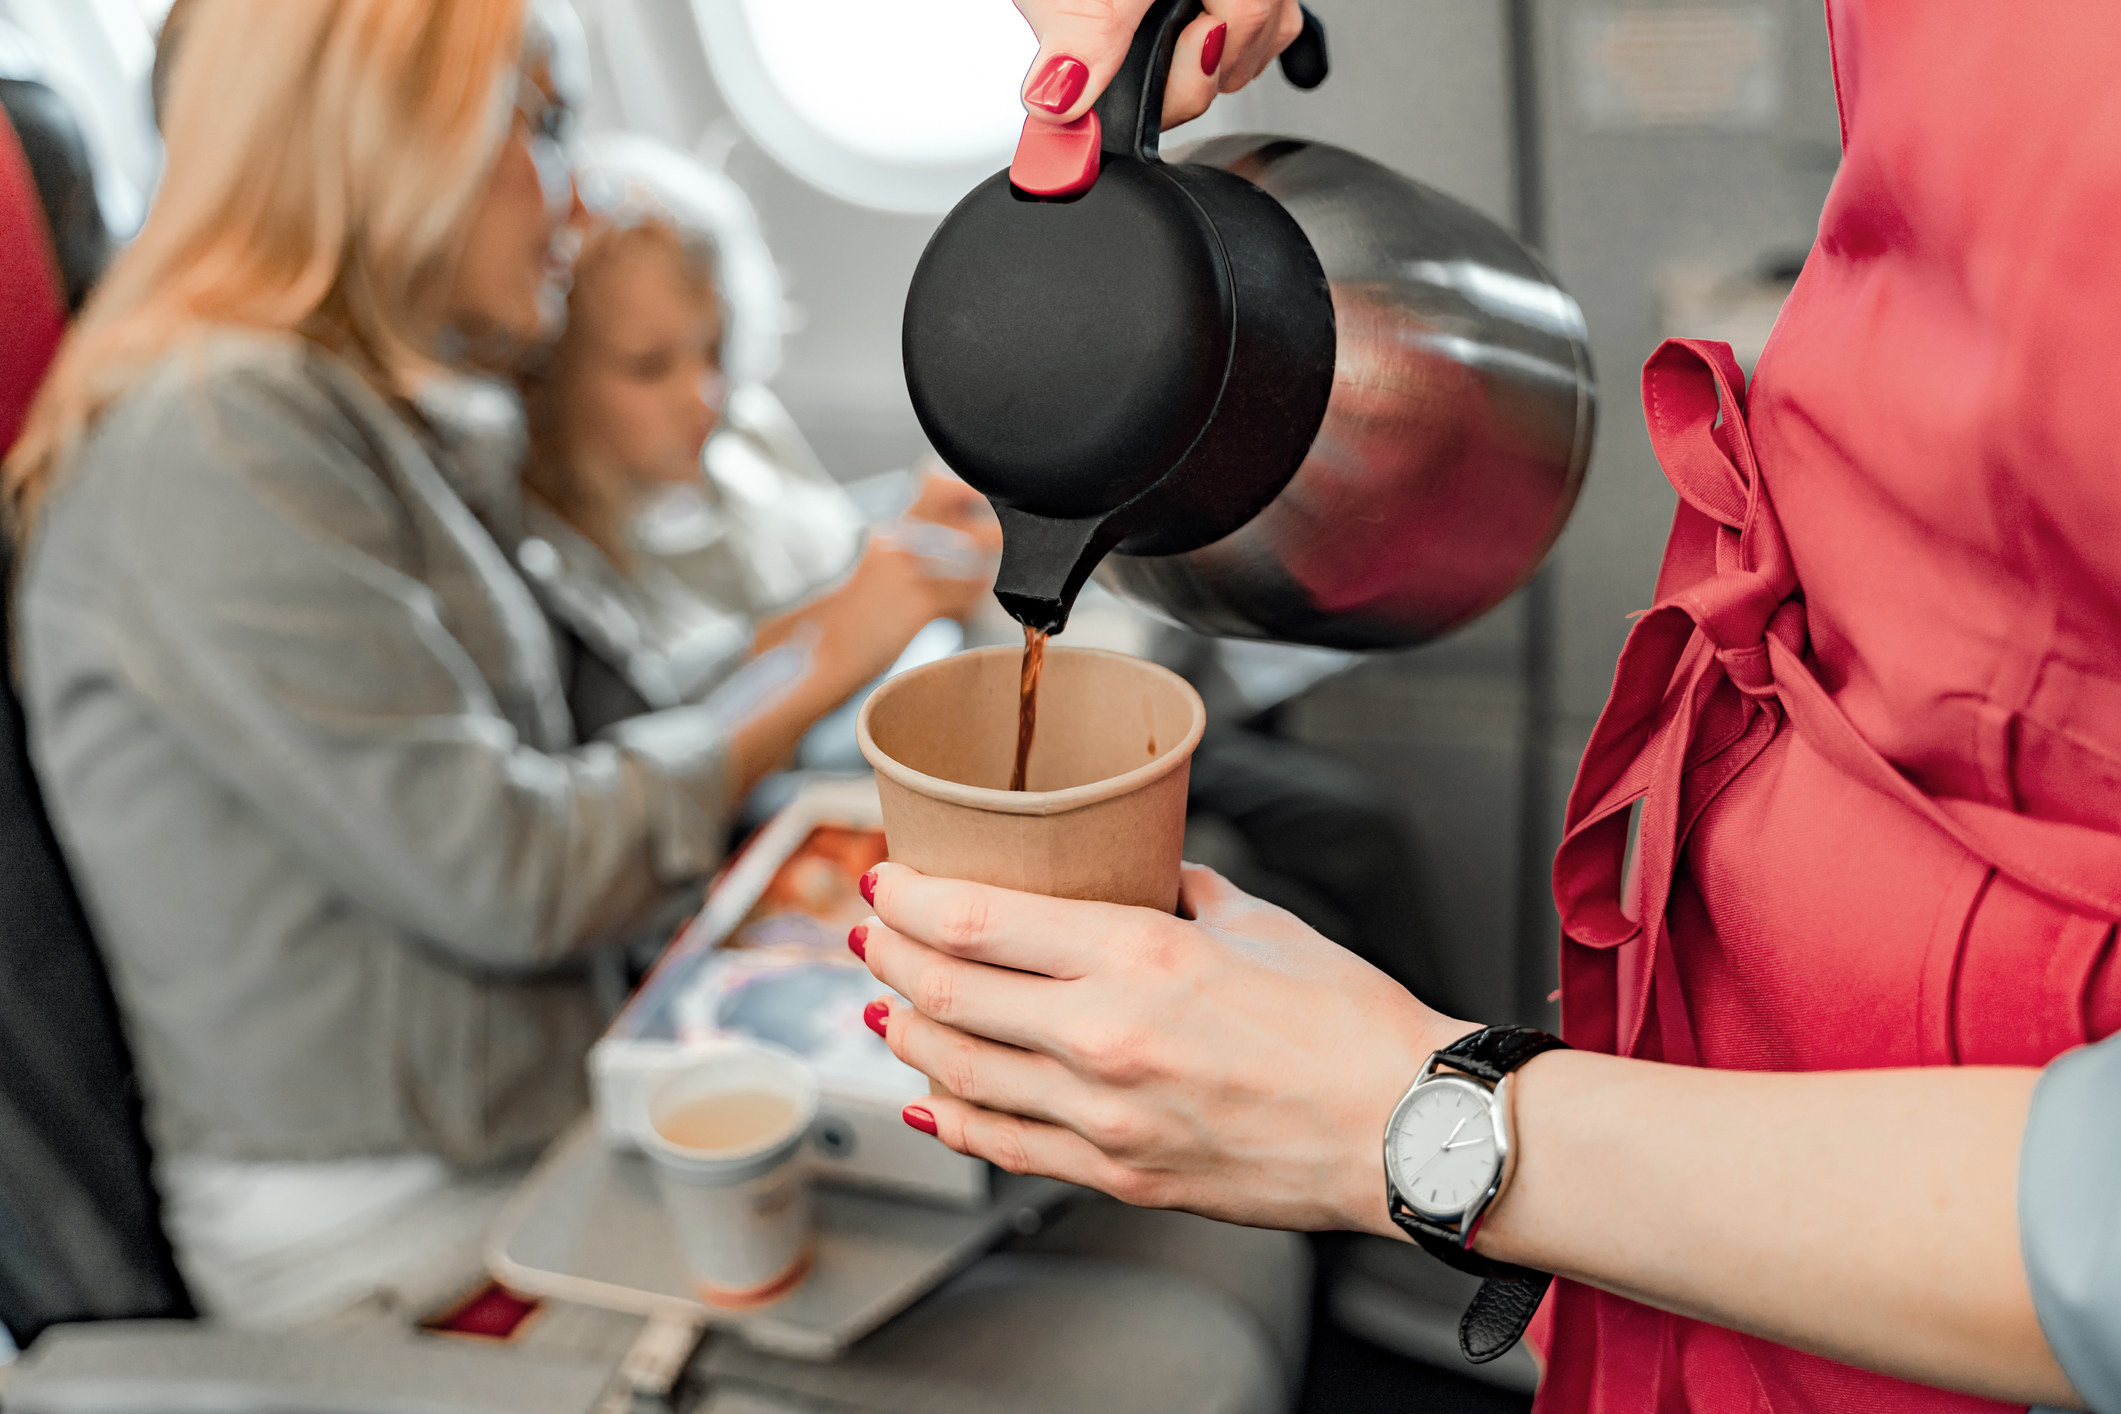 A flight attendant pouring coffee next to a woman and a child